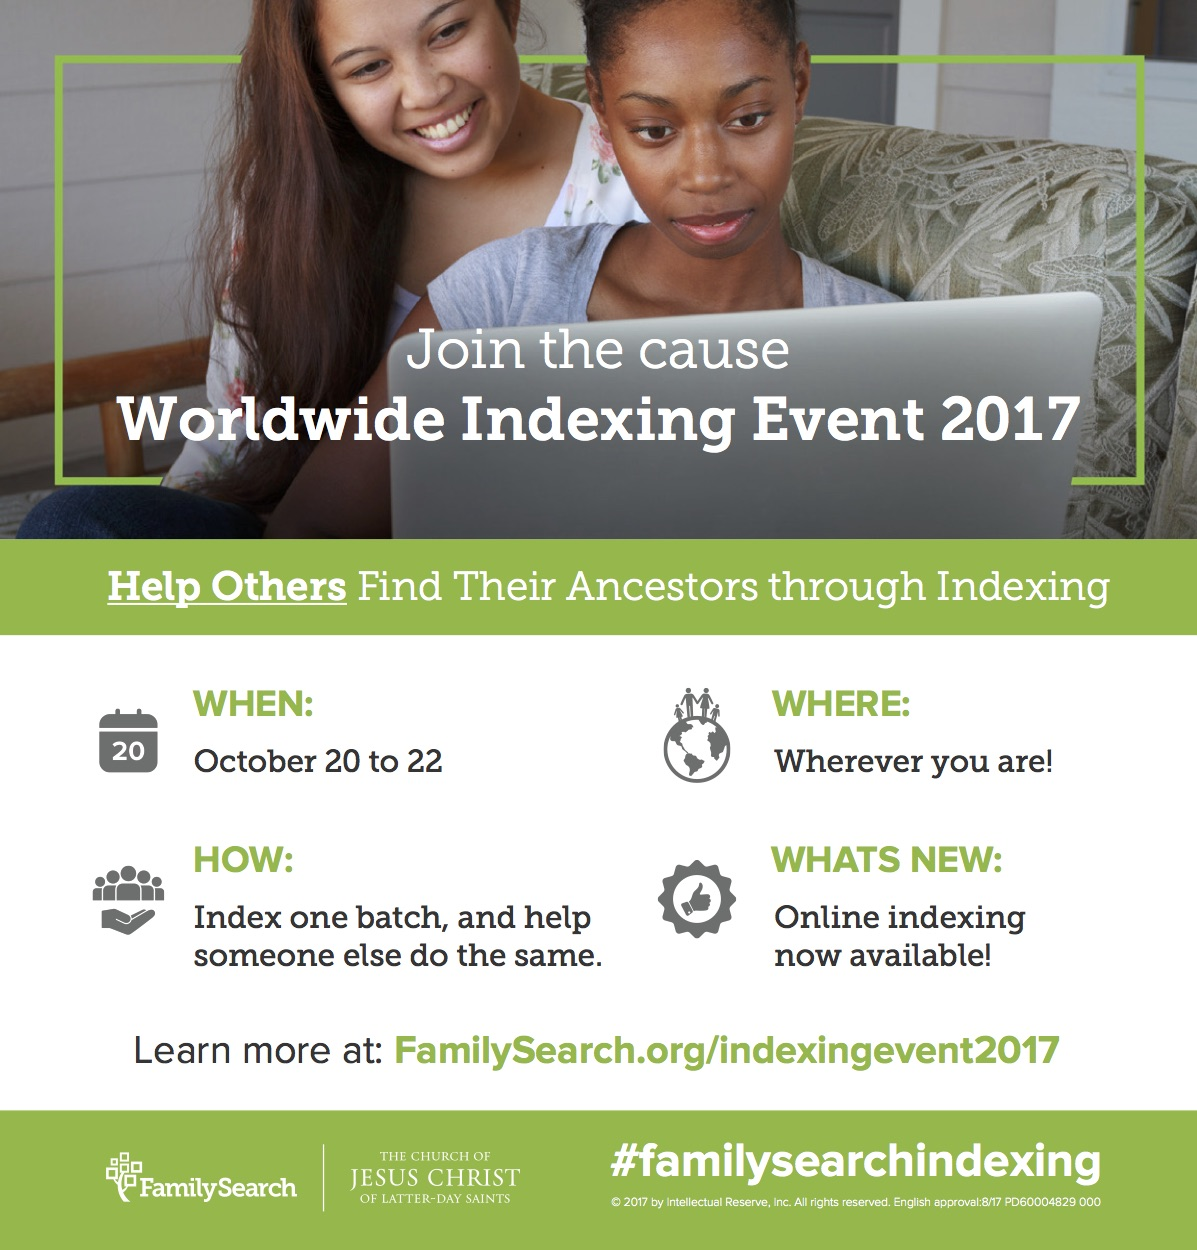 Are you looking for a simple way to become involved in Family History? Join the Worldwide Indexing Event to help information be more available for research!